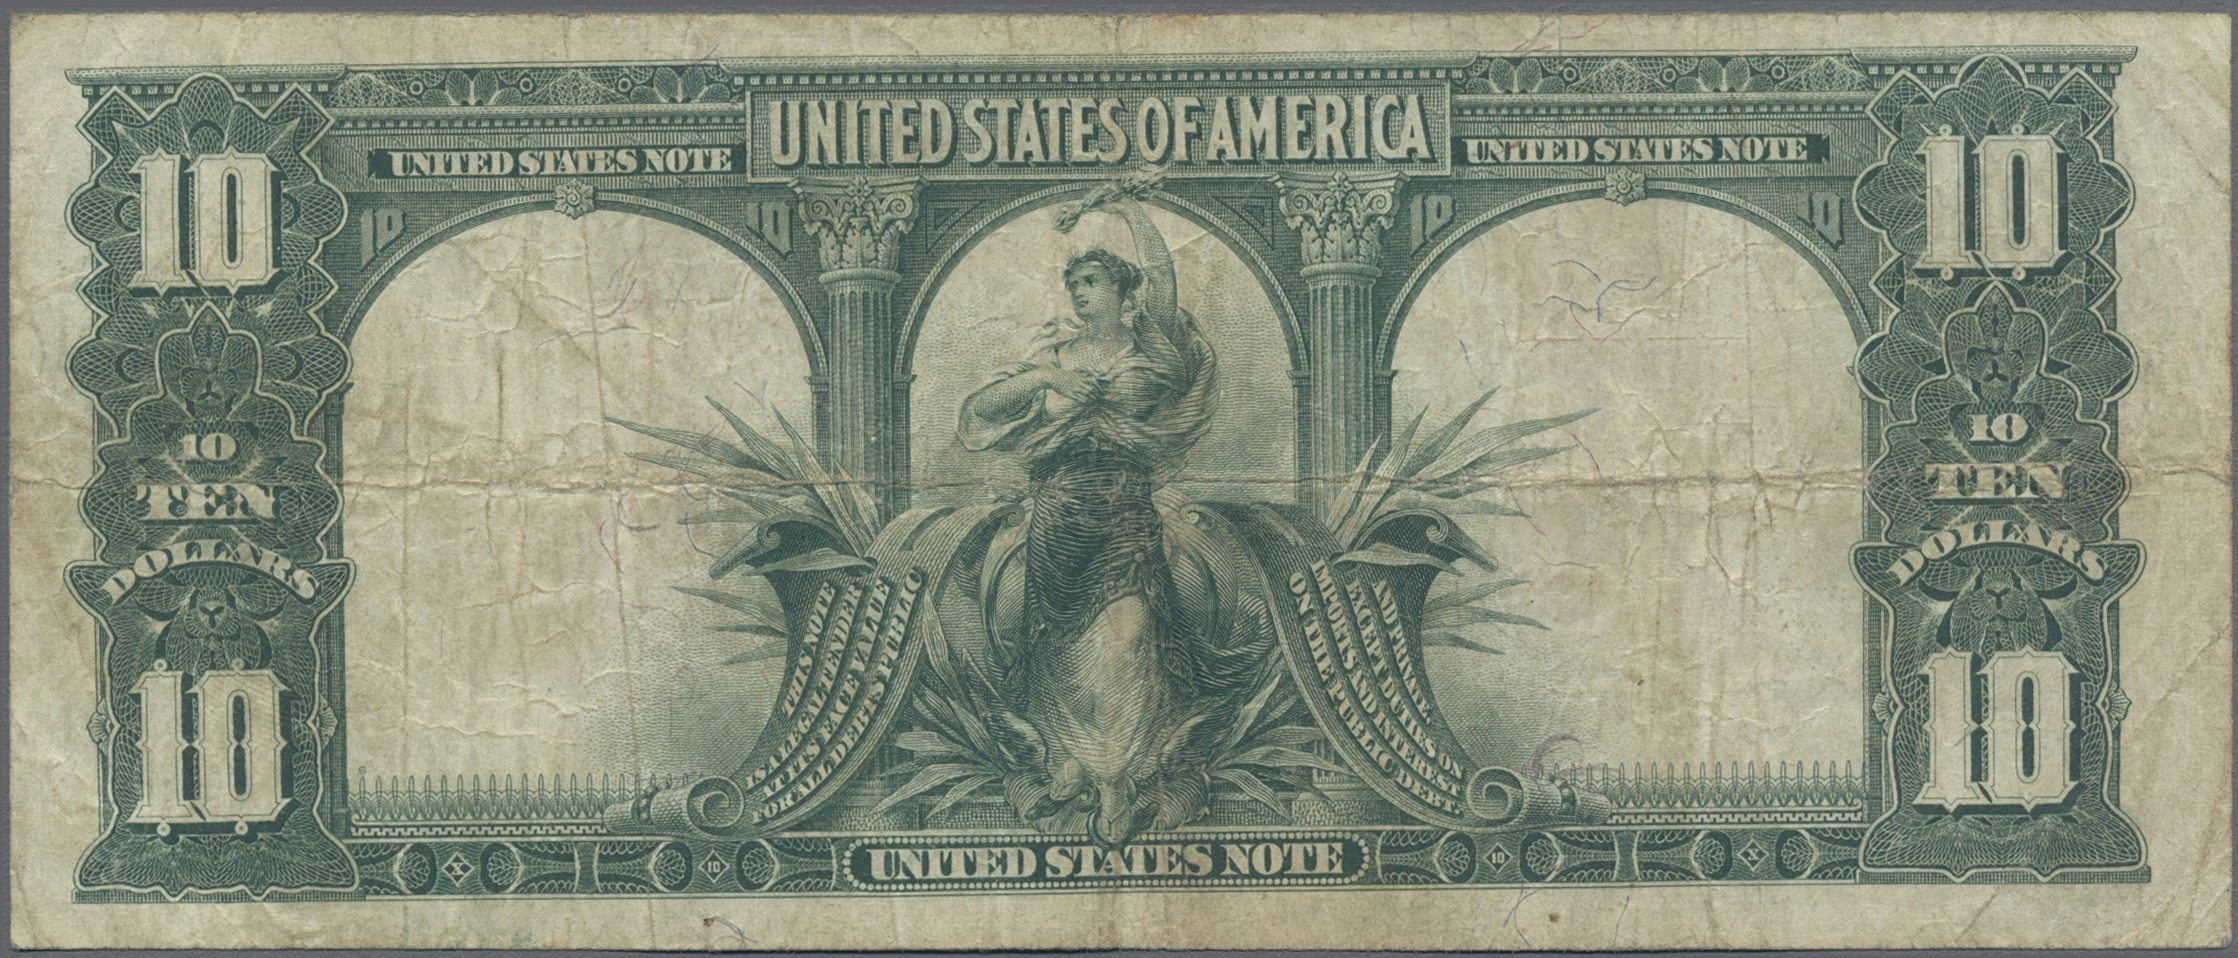 Lot 00902 - United States of America   Banknoten  -  Auktionshaus Christoph Gärtner GmbH & Co. KG Sale #48 The Banknotes